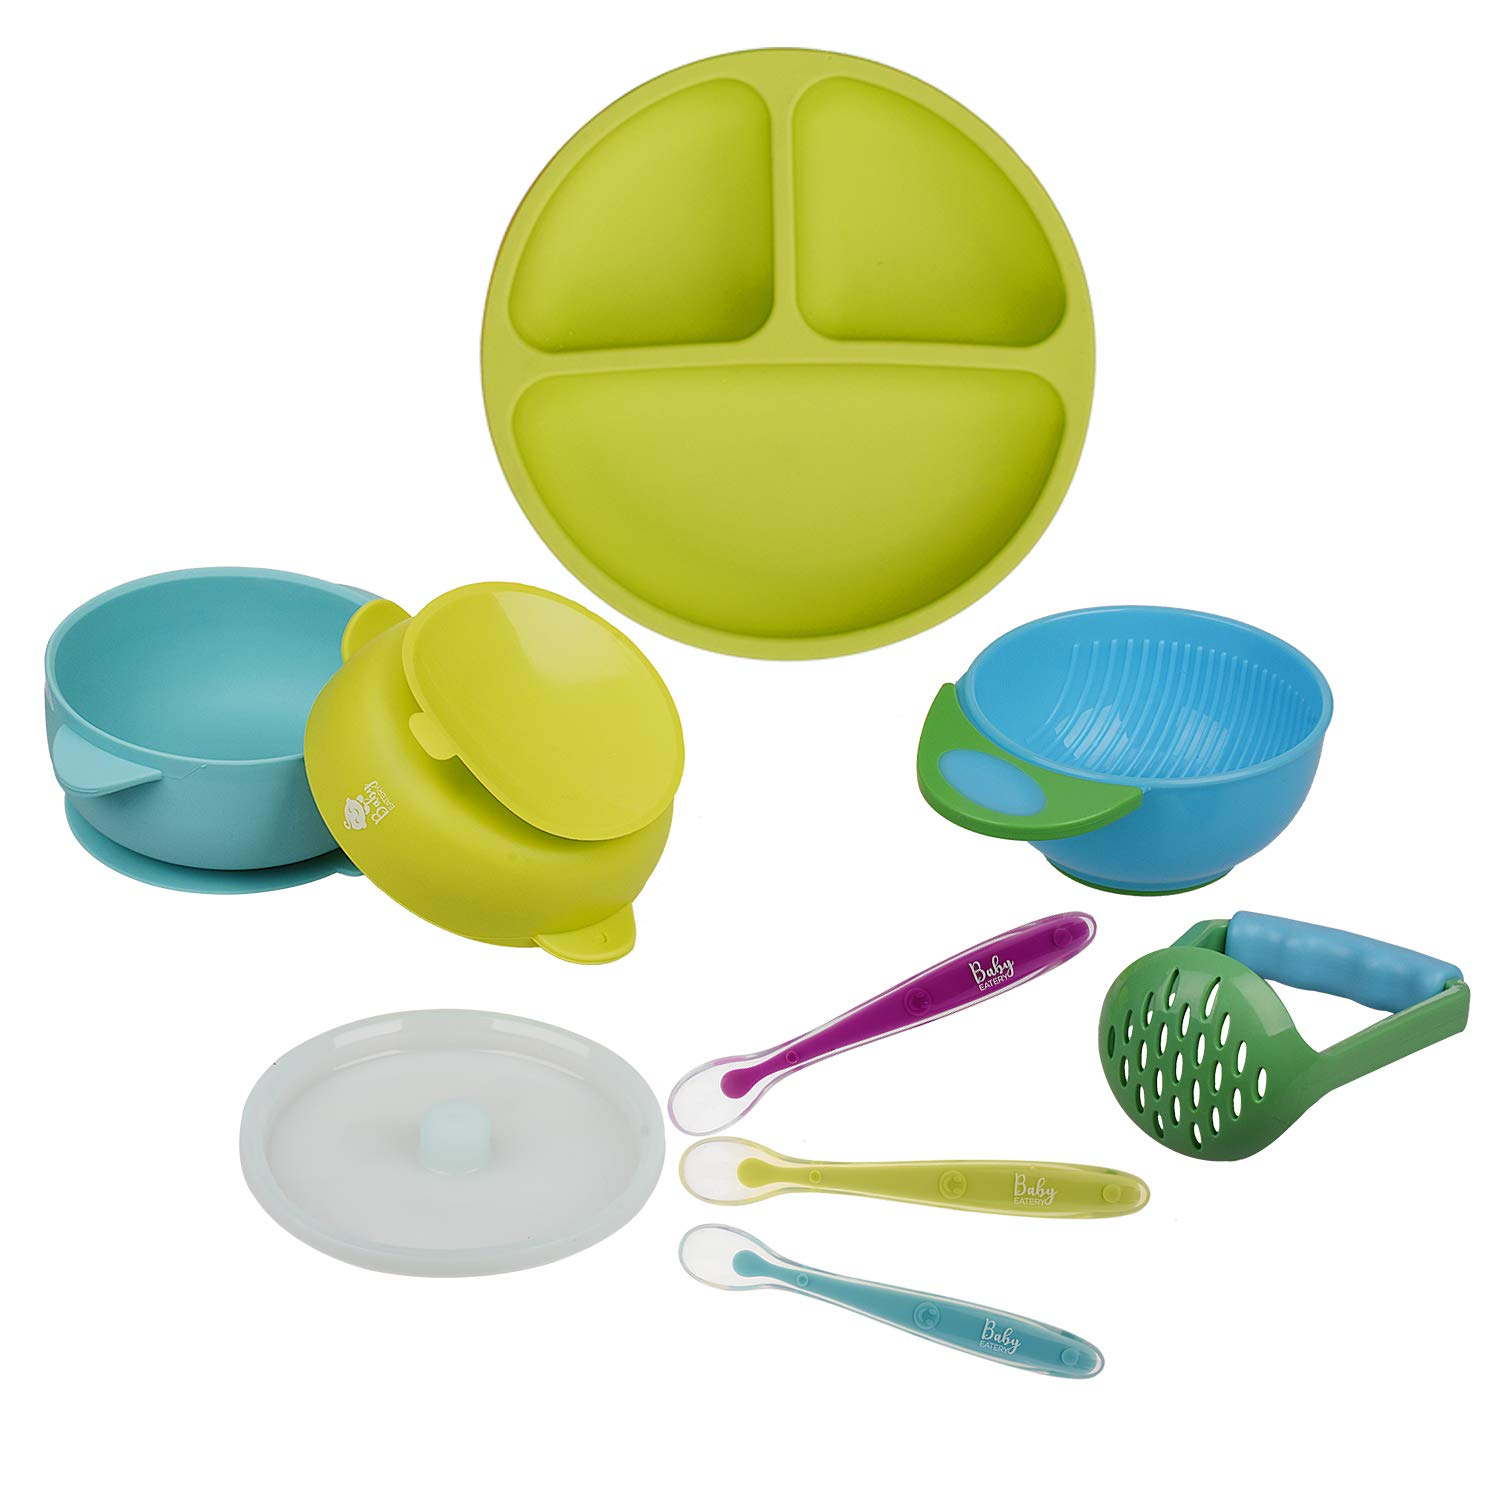 Baby Toddler Feeding Set - BPA Free Silicone Plates Bowls Spoons - Divided Plate Suction Bowl Soft Spoon Bonus Mash and Serve Bowl- Self Feed, Easy Clean,Safe for Children, Waterproof Spill Resistant by BabyEatery